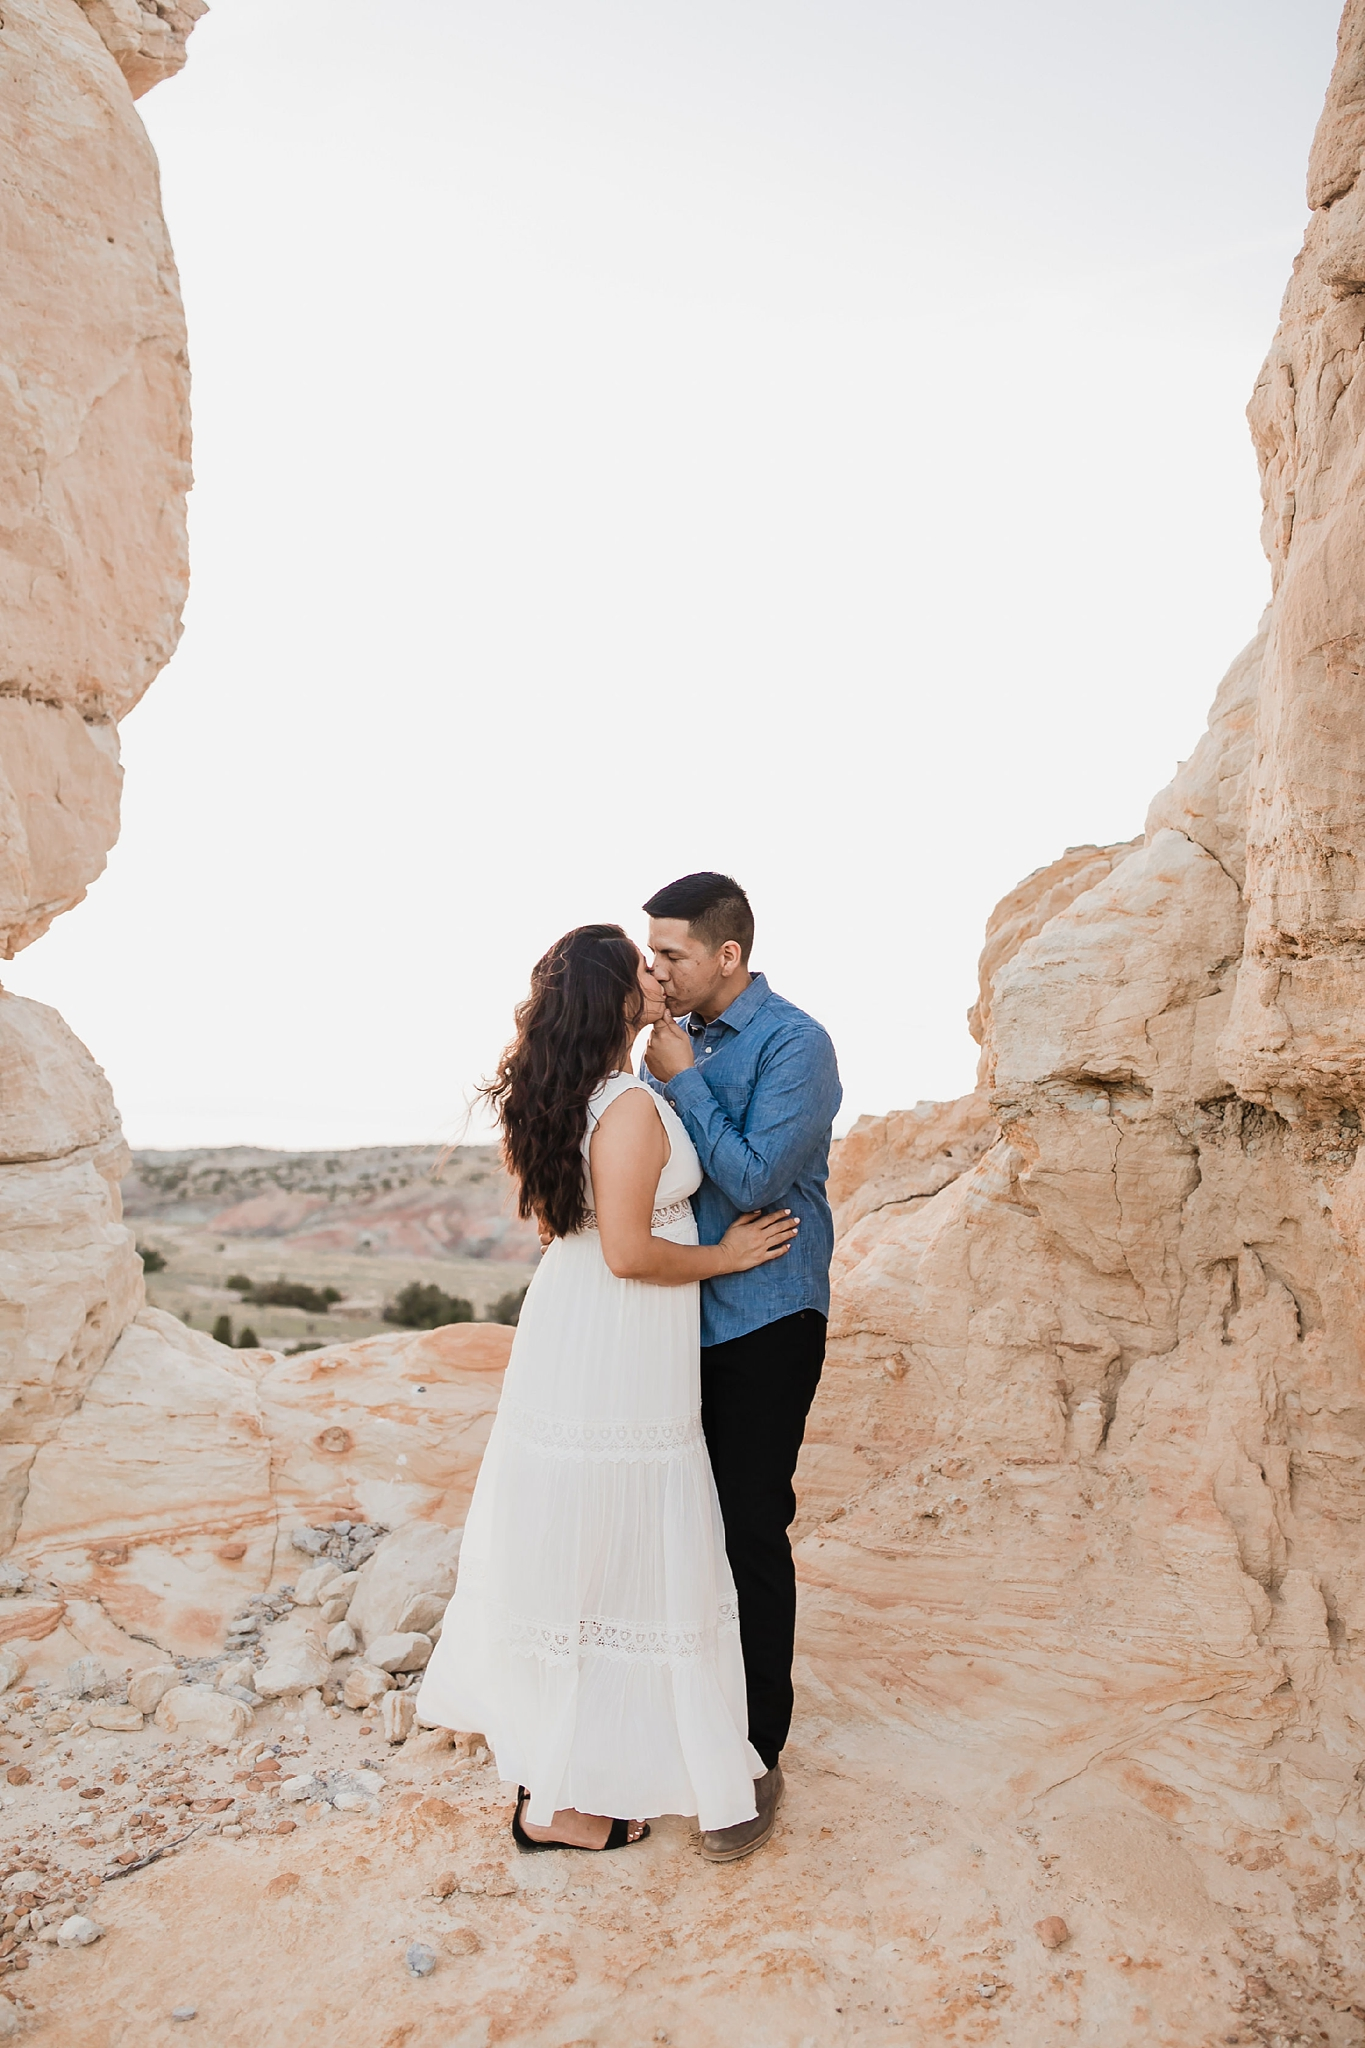 Alicia+lucia+photography+-+albuquerque+wedding+photographer+-+santa+fe+wedding+photography+-+new+mexico+wedding+photographer+-+new+mexico+wedding+-+new+mexico+engagement+-+engagement+style+-+style+lookbook_0008.jpg